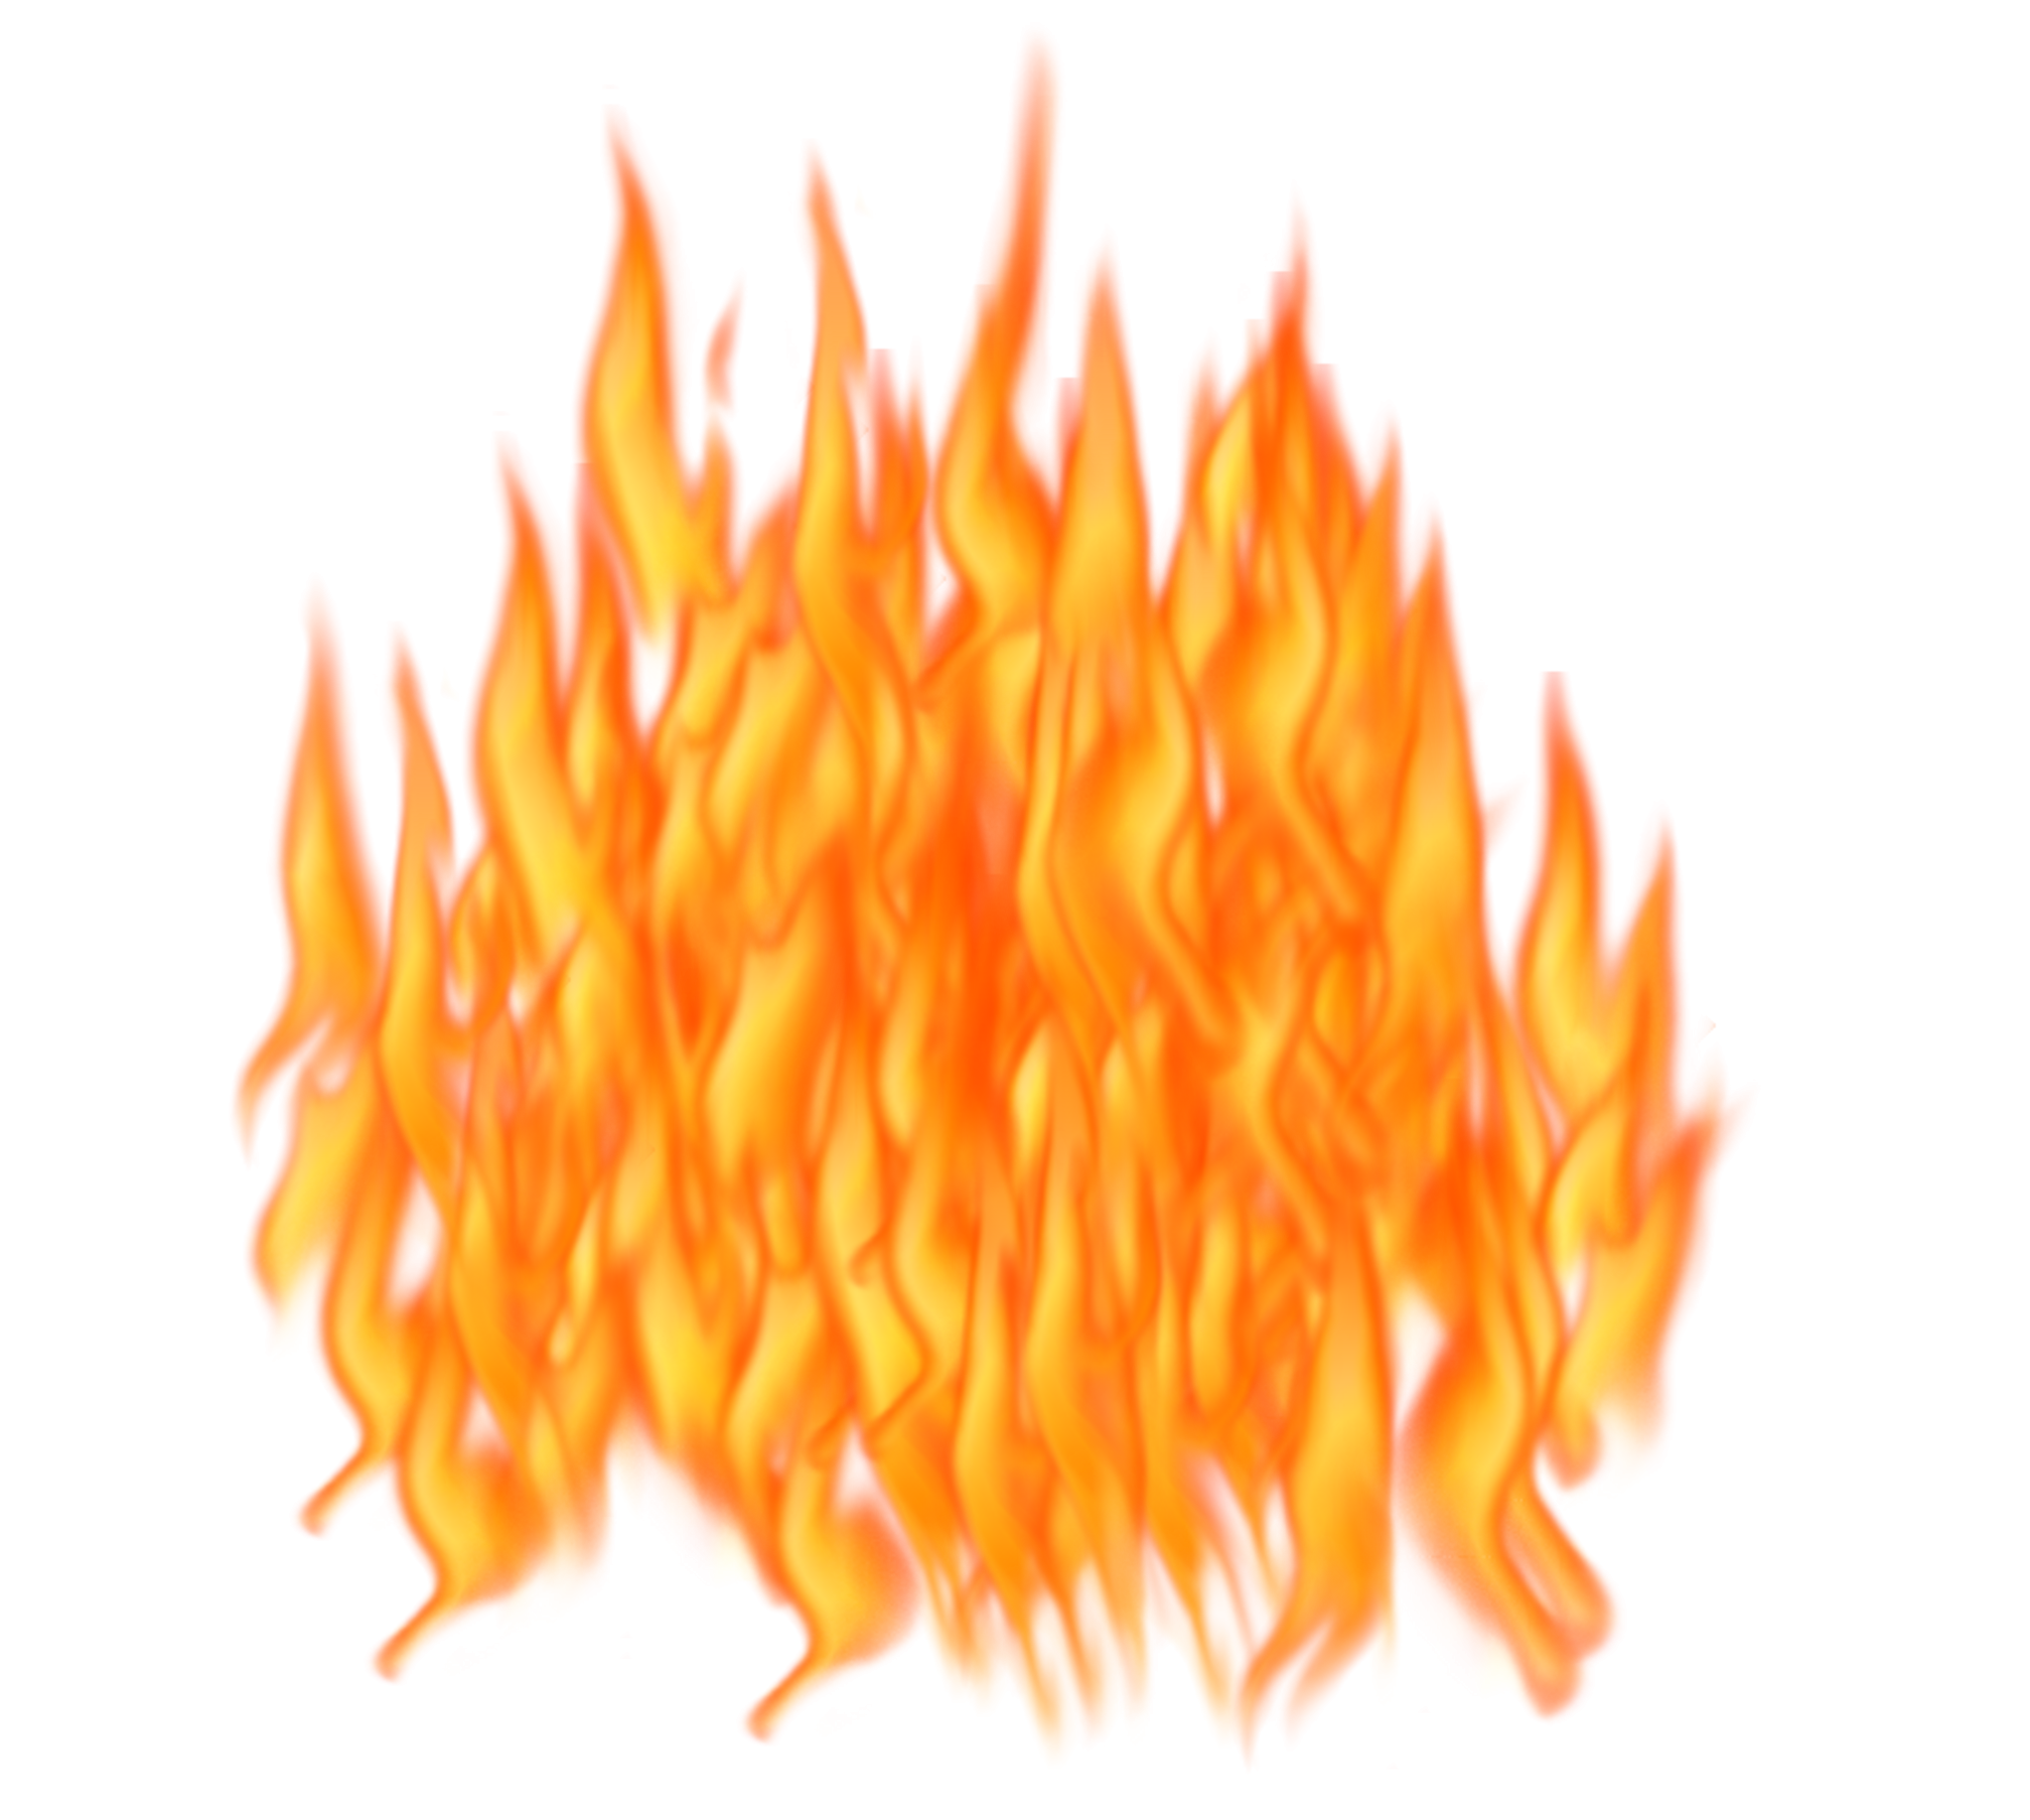 Flames clipart cute. Fire flame png images